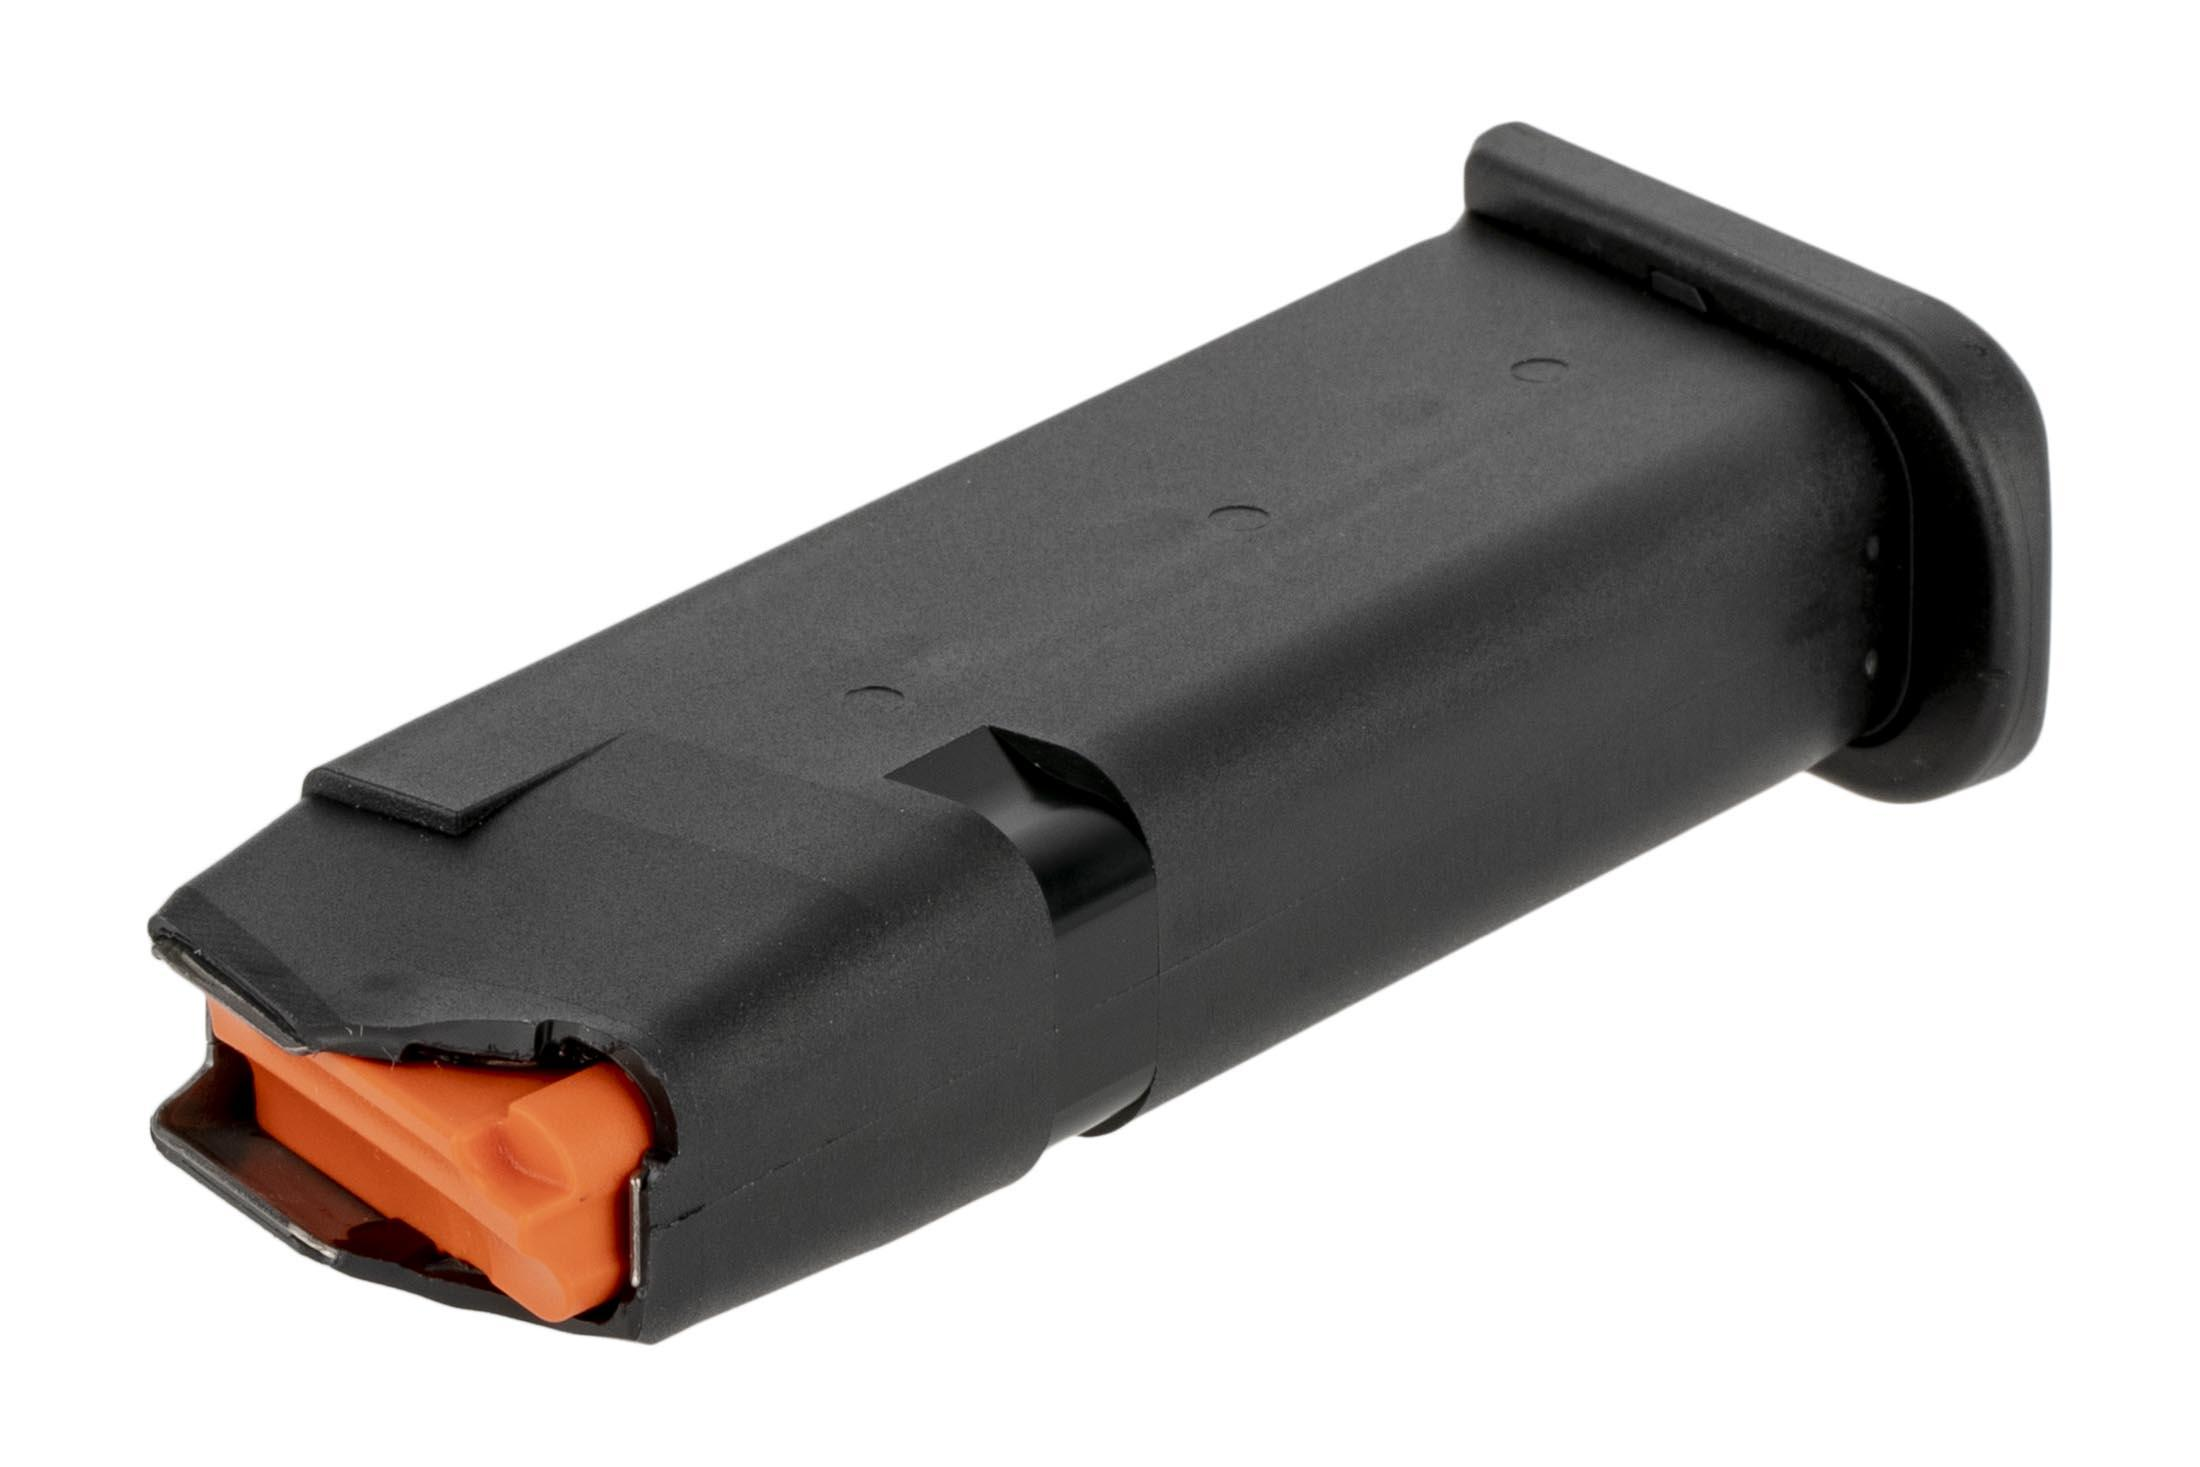 Glock 10-round OEM magazines for the G43x and G48 have 10-round capacities with a high visibility follower.